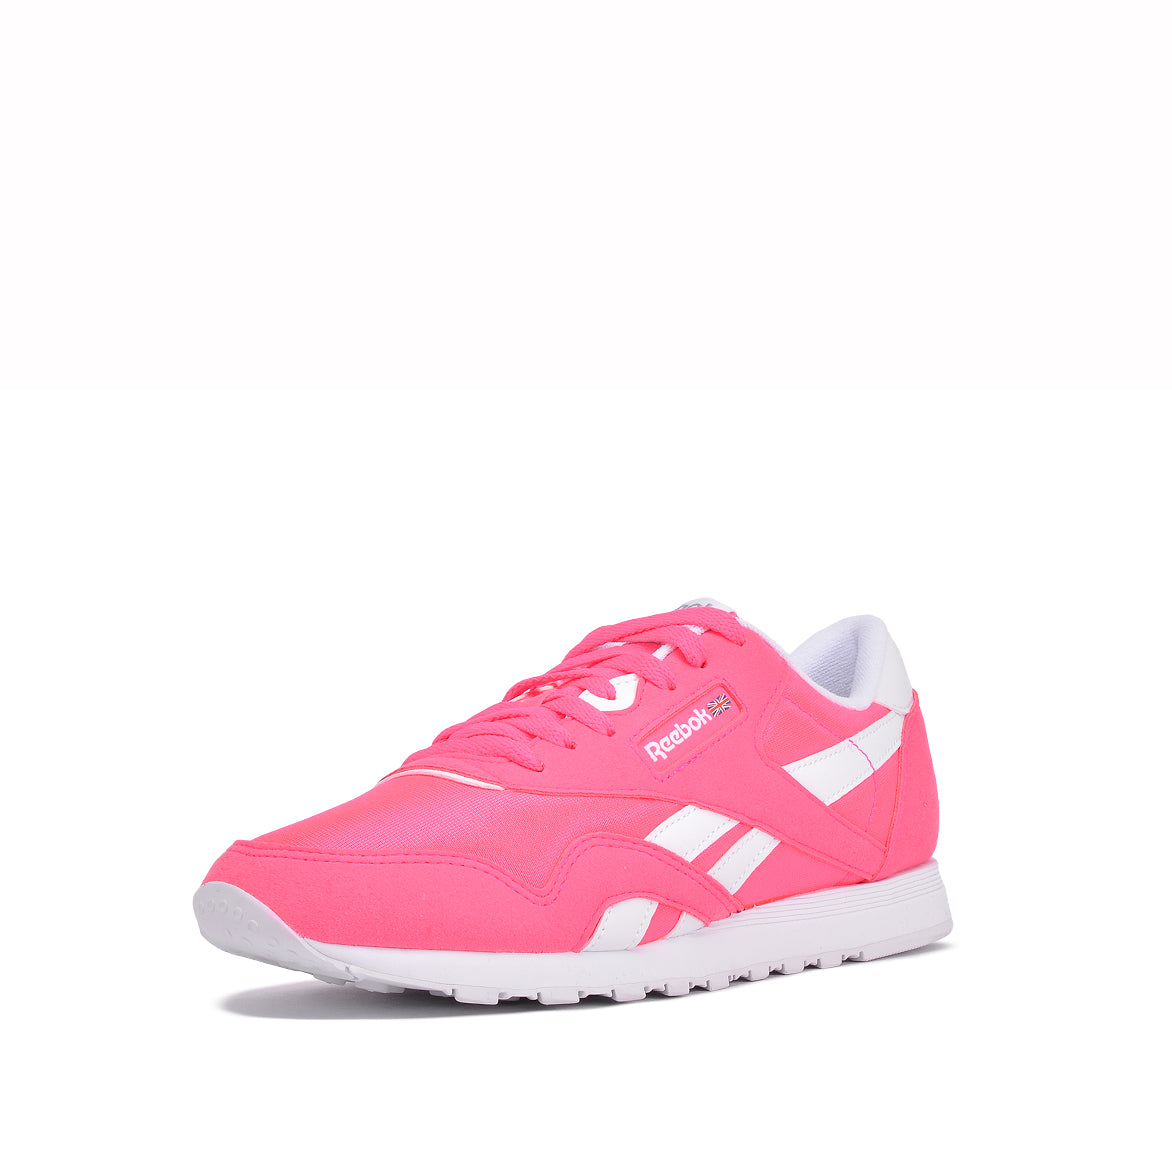 CLASSIC NYLON BRIGHTS - ACID PINK